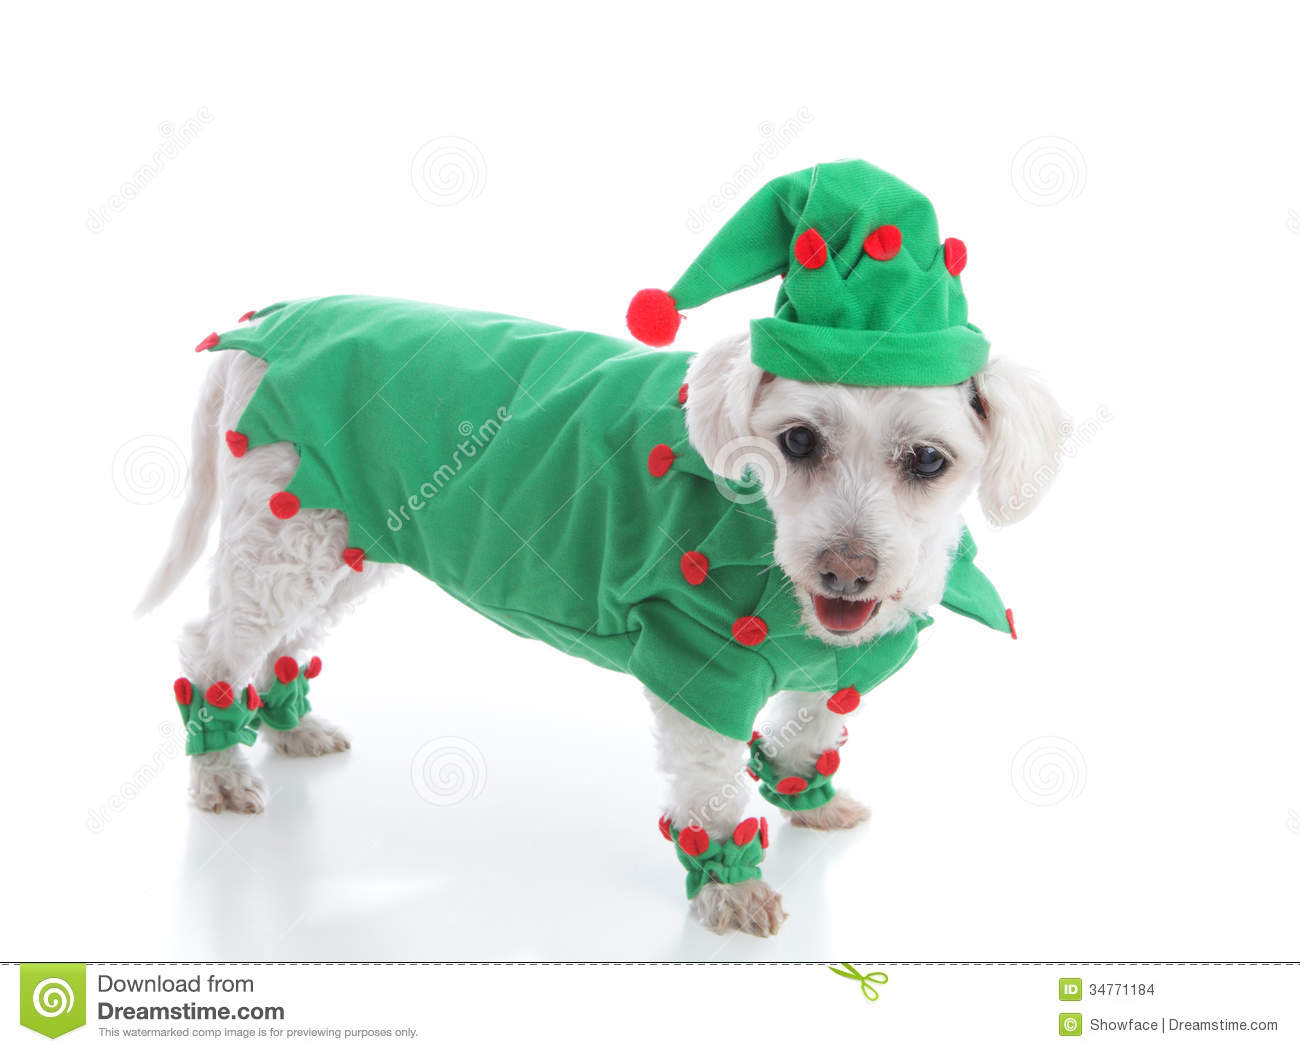 5e8dcc87ef6ac Pet dog wearing a red and green coat and pointy hat. Suitable as a  Christmas Elf